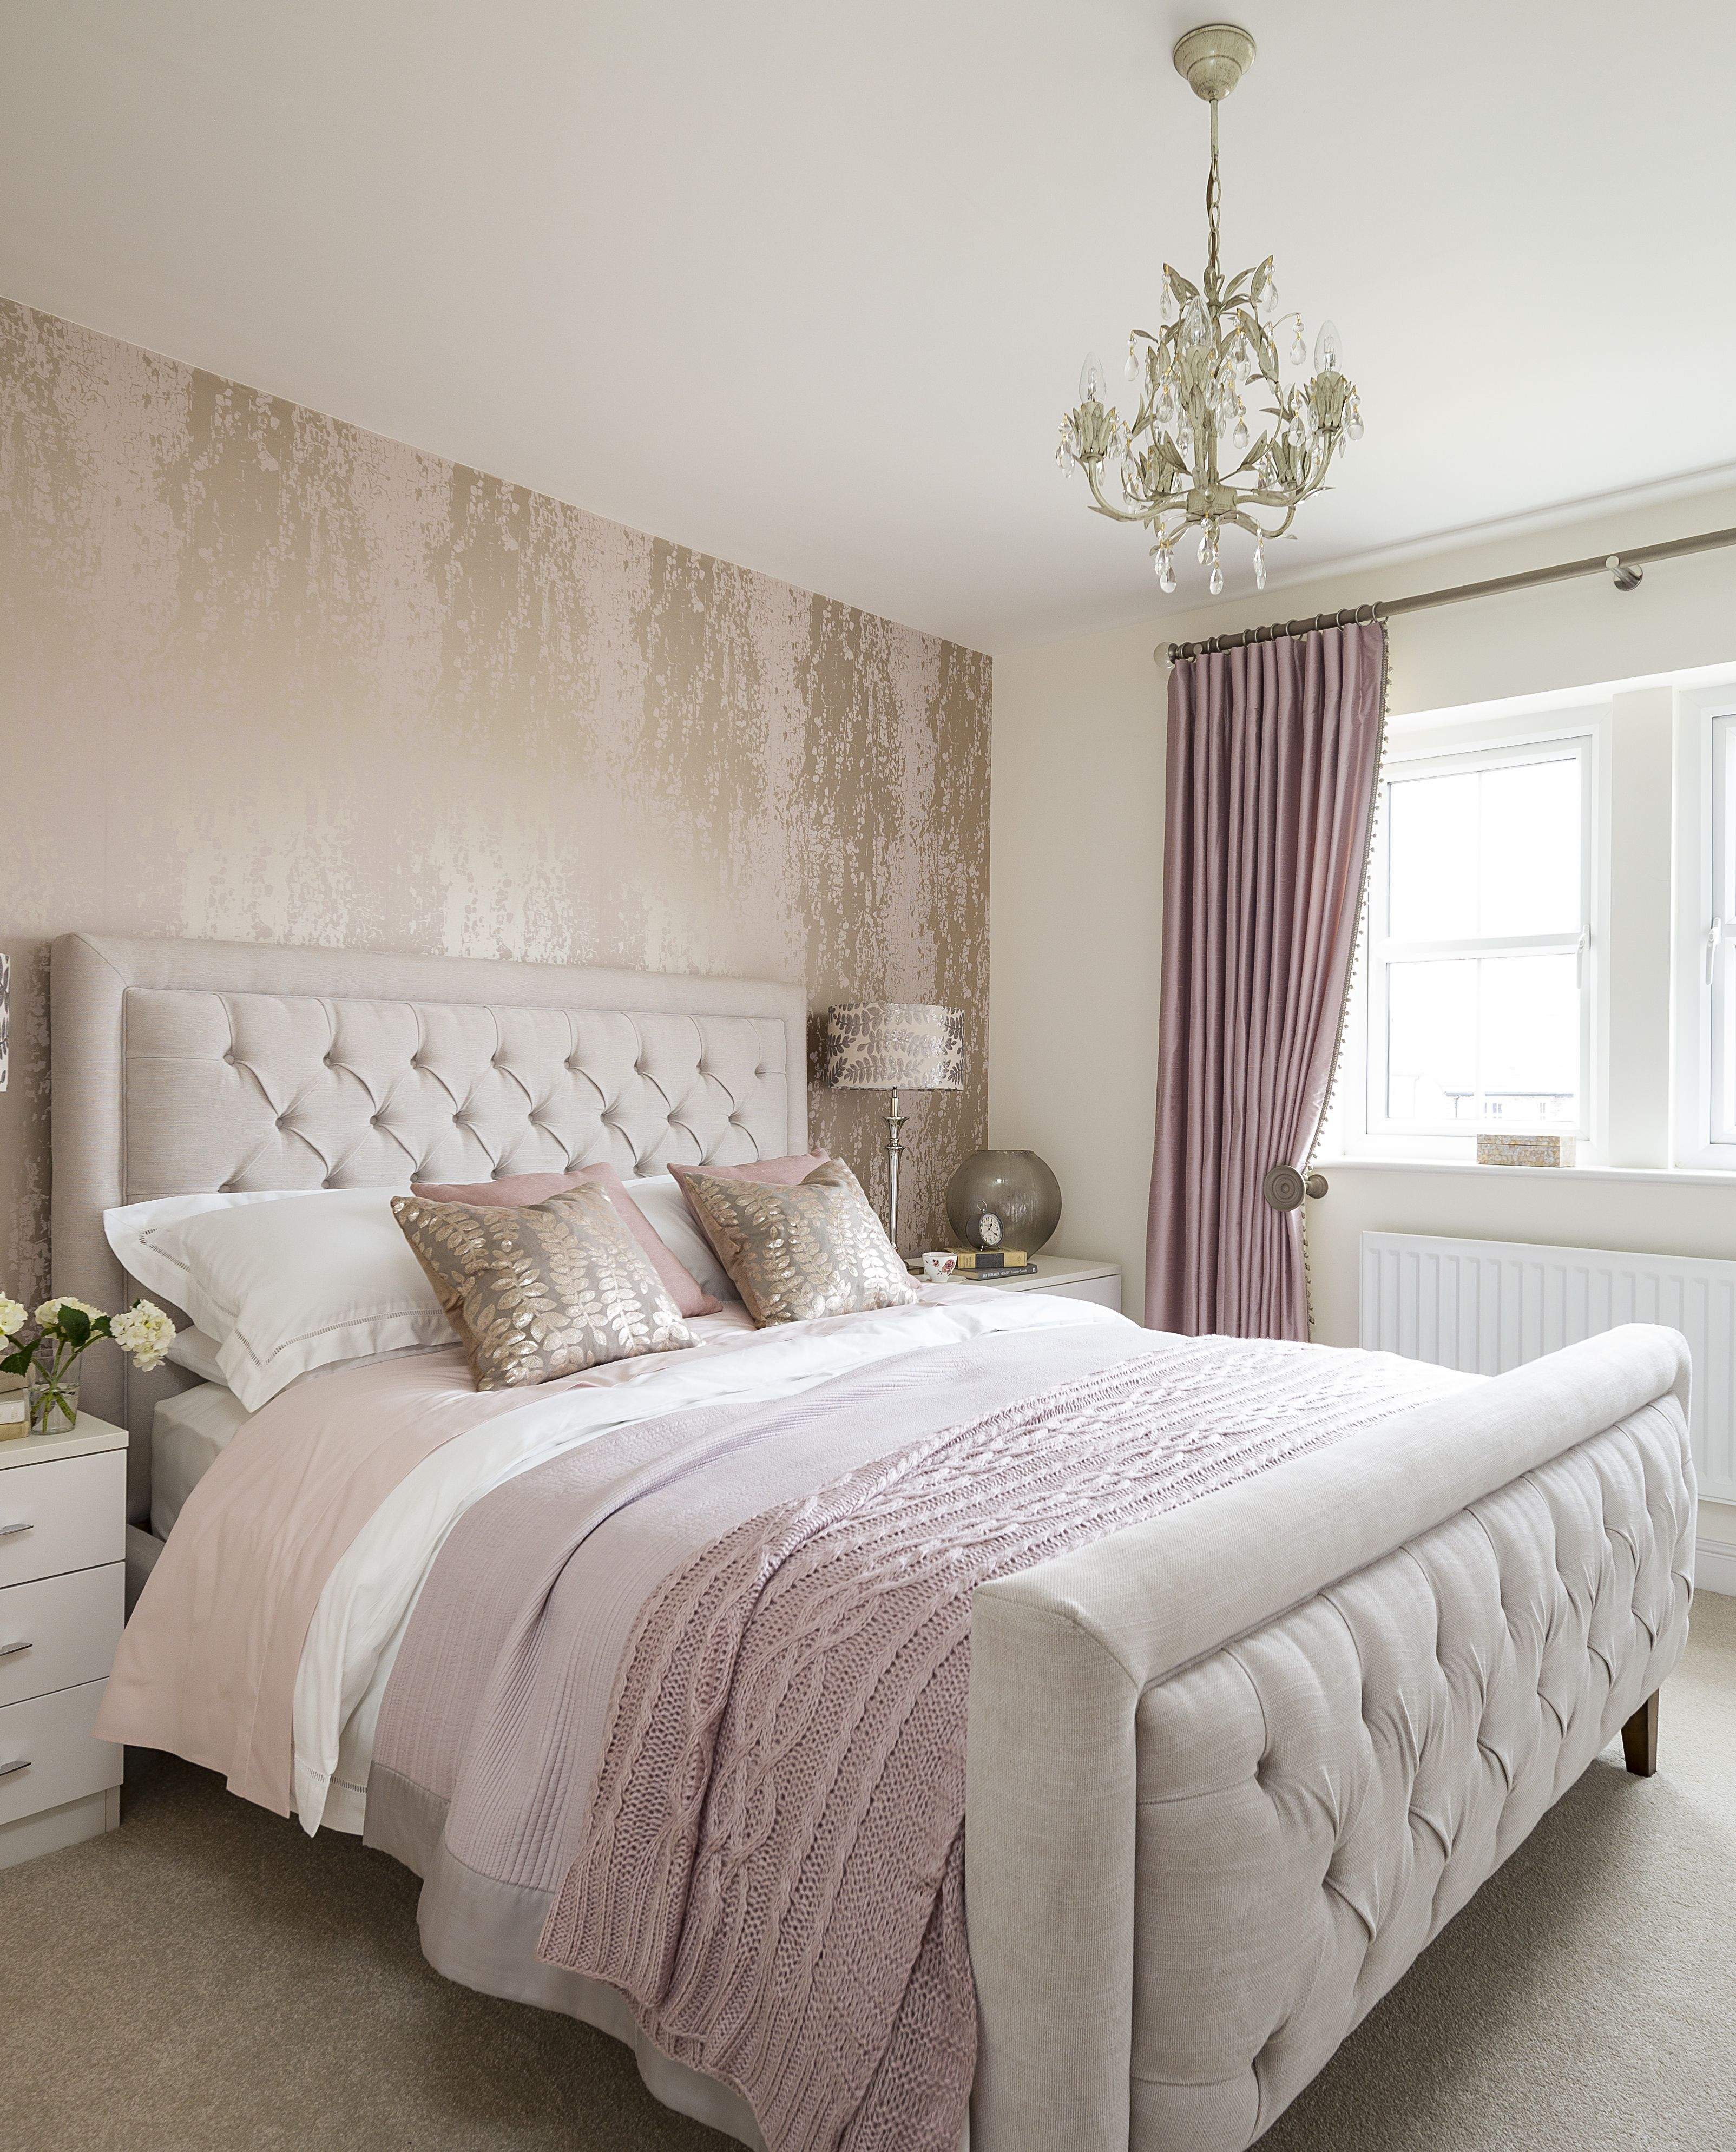 Check out these fabulous best bedroom ideas